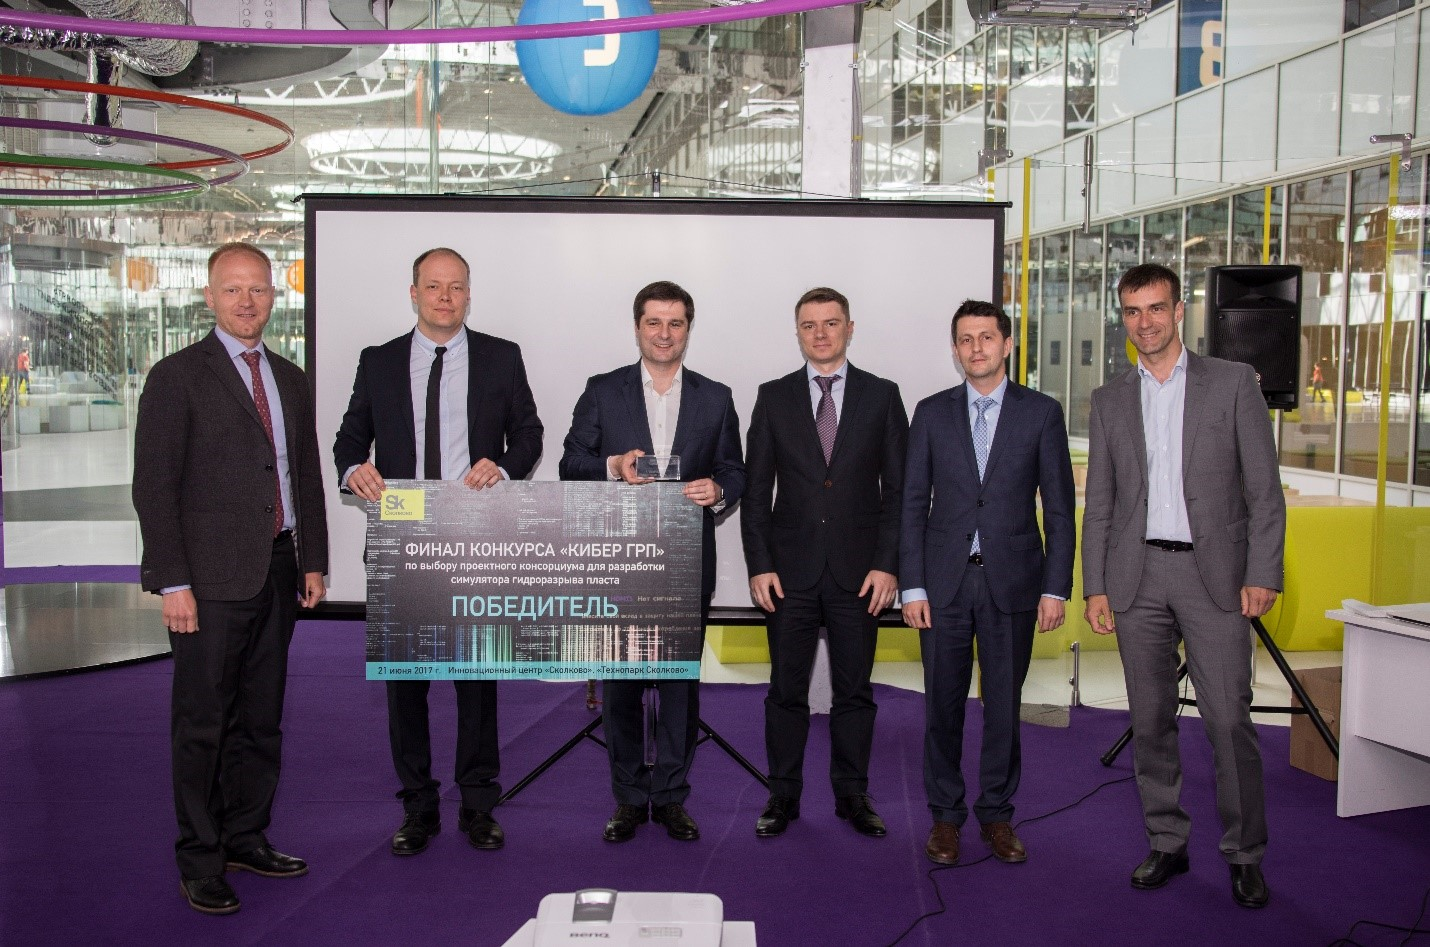 Members of the consortium and the jury, posing after the final. From left to right: Sergey Arkhipov (Head of the Expert Council for CyberFrac competition, Gazpromneft), Professor Andrei Osiptsov (Skoltech), Timur Tavberidze (MD, Eng. Center MIPT), and the members of the jury from the government.